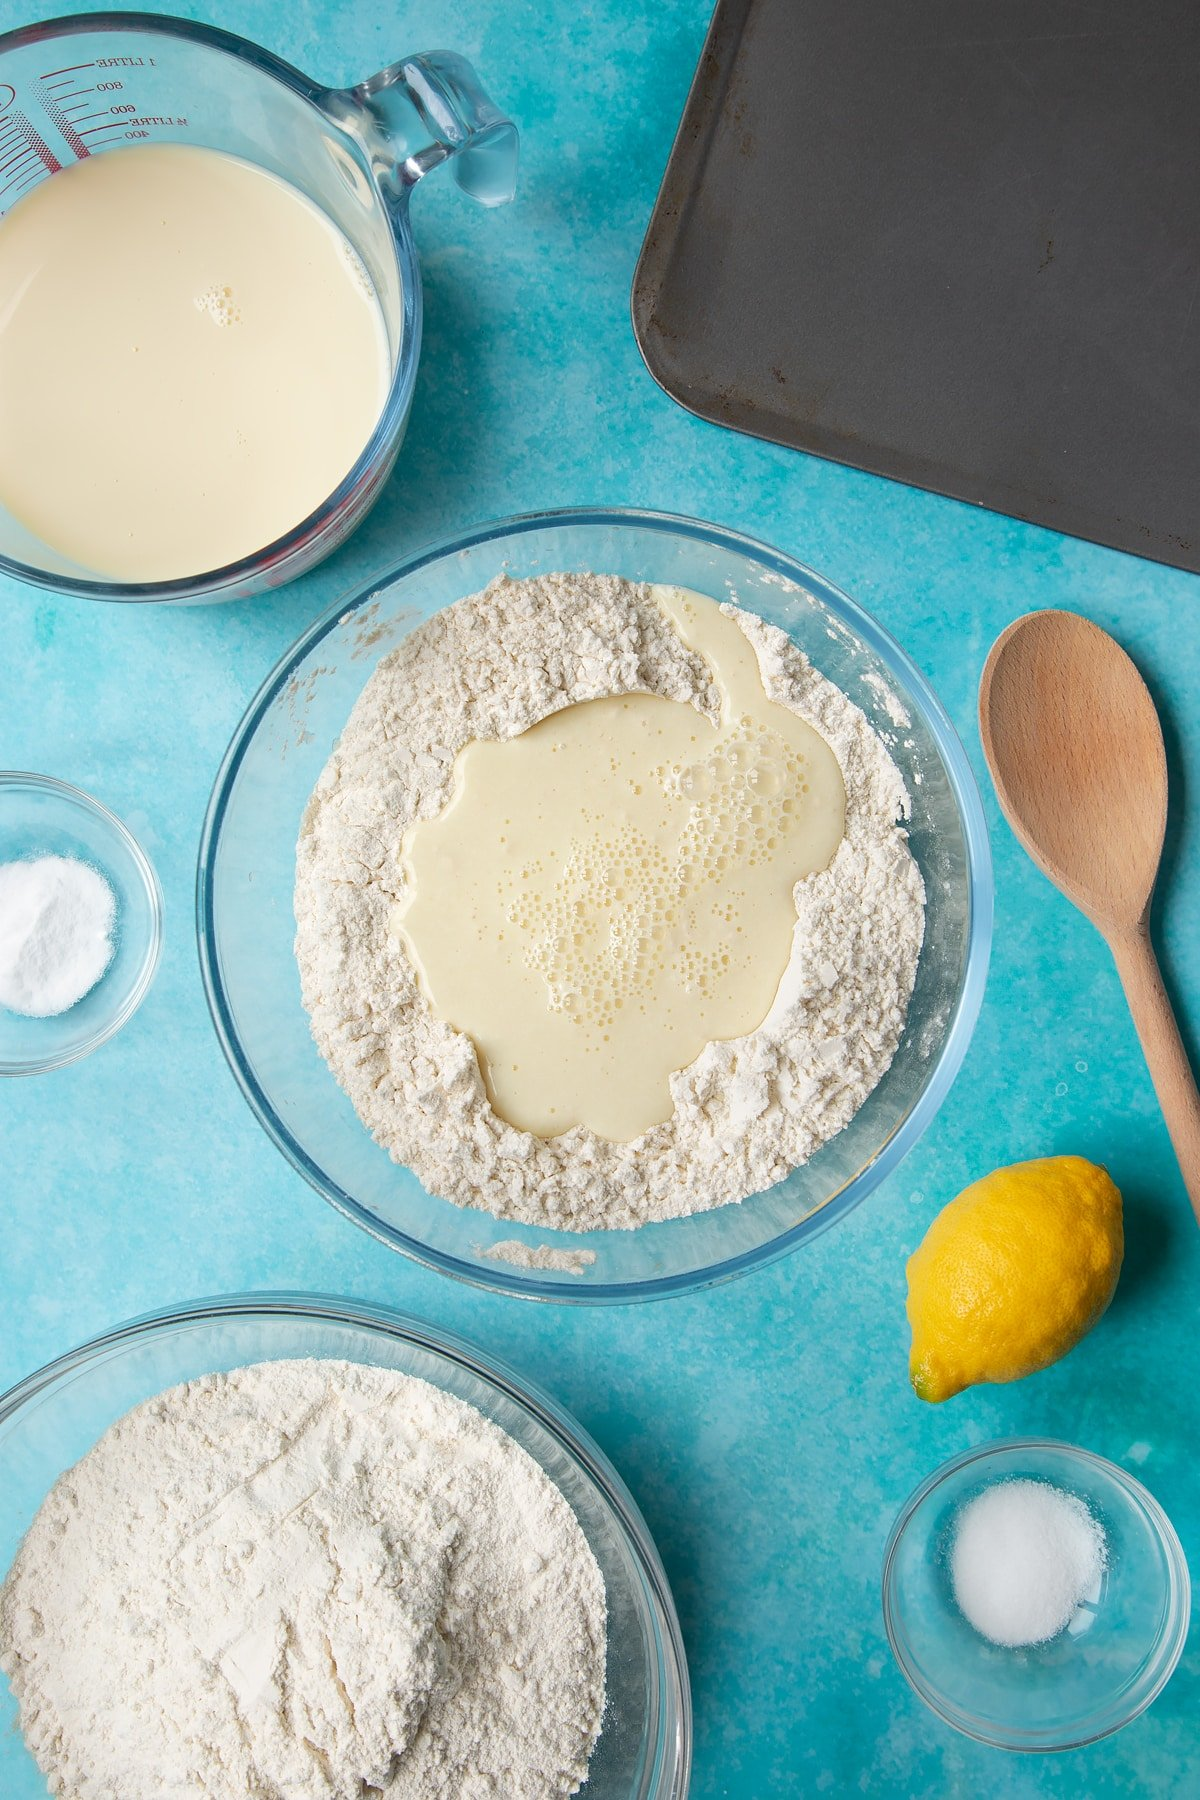 A bowl containing plain flour, salt and bicarbonate of soda, mixed with a well in the centre filled with plant milk. Ingredients to make vegan soda bread surround the bowl.